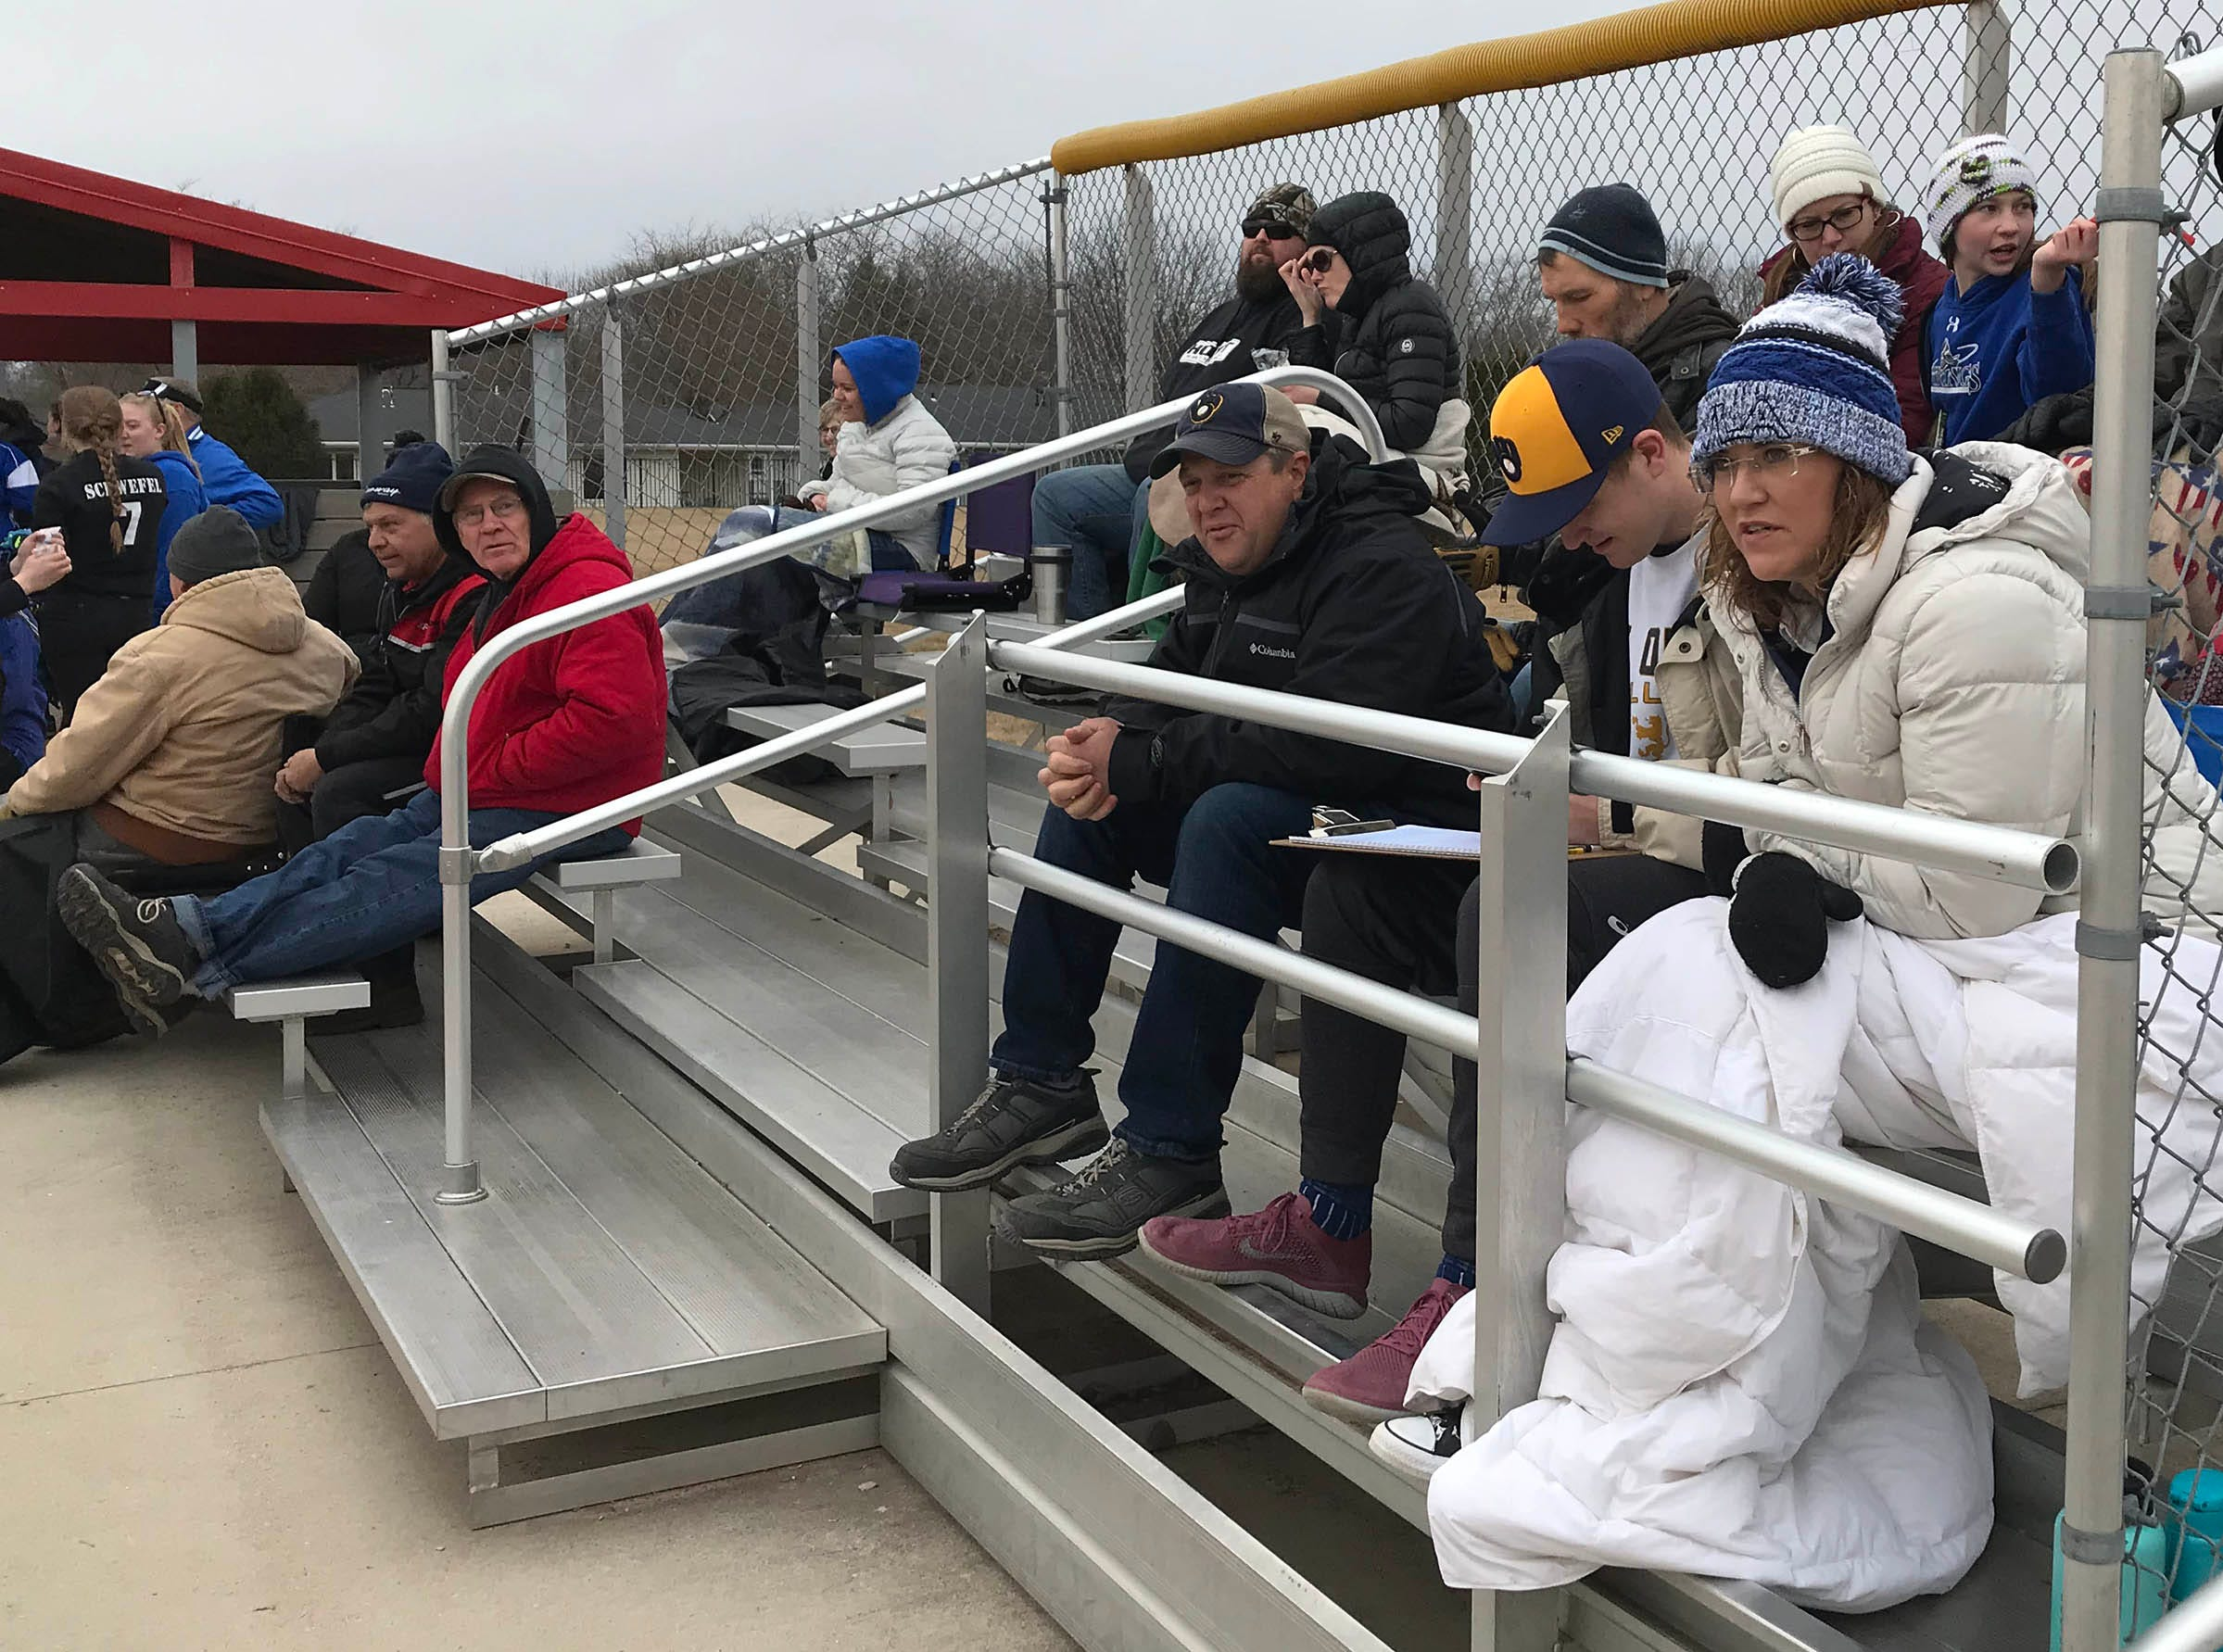 Softball fans were bundled up for spring weather during the game between Winnebago Lutheran and Kiel, Thursday, March 28, 2019, in Fond du Lac, Wis.